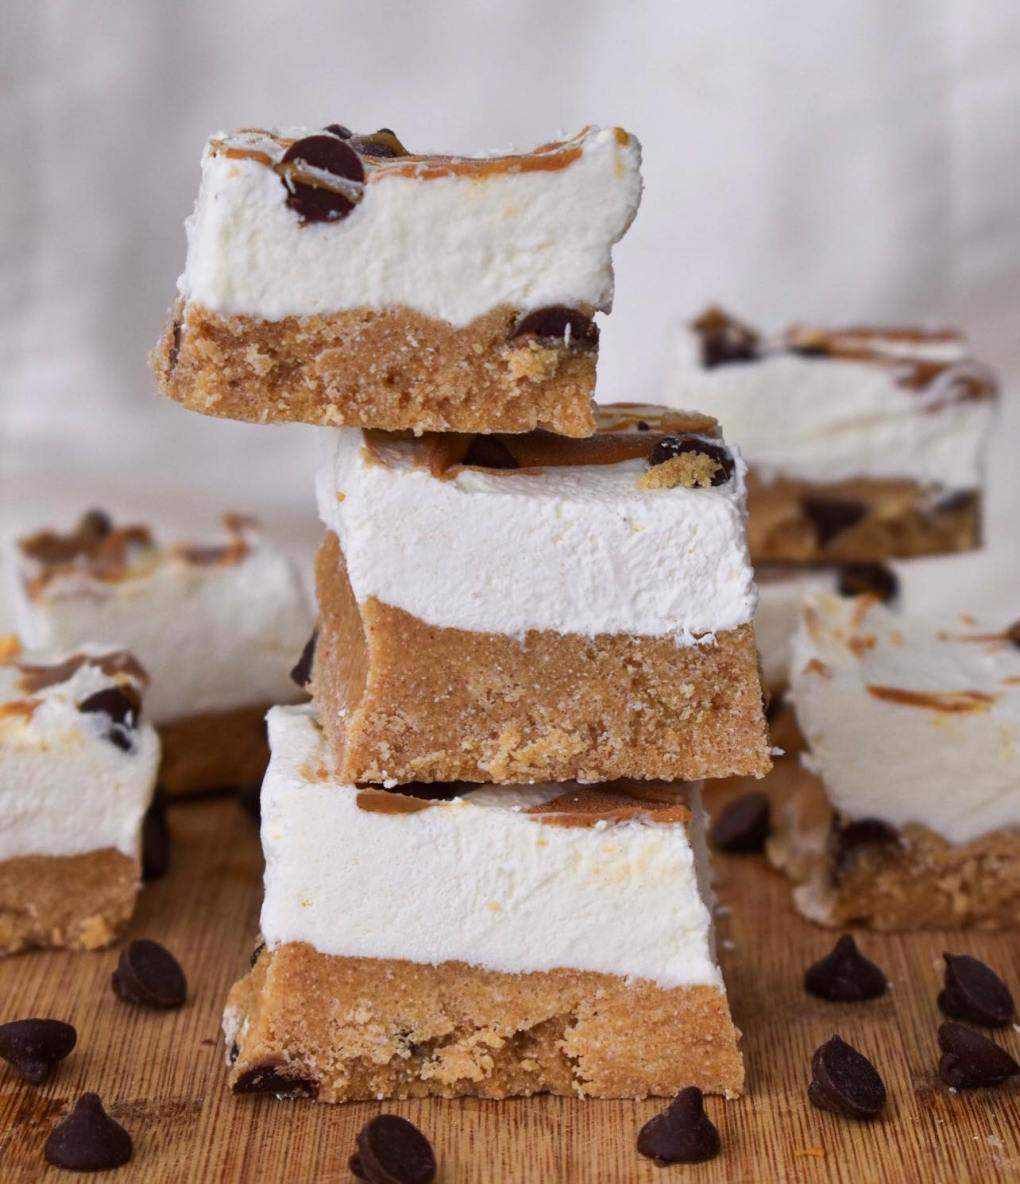 three vegan cheesecake bars stacked on eachother with a cookie dough base. Chocolate chips and more cheesecake bars are shown in the background.